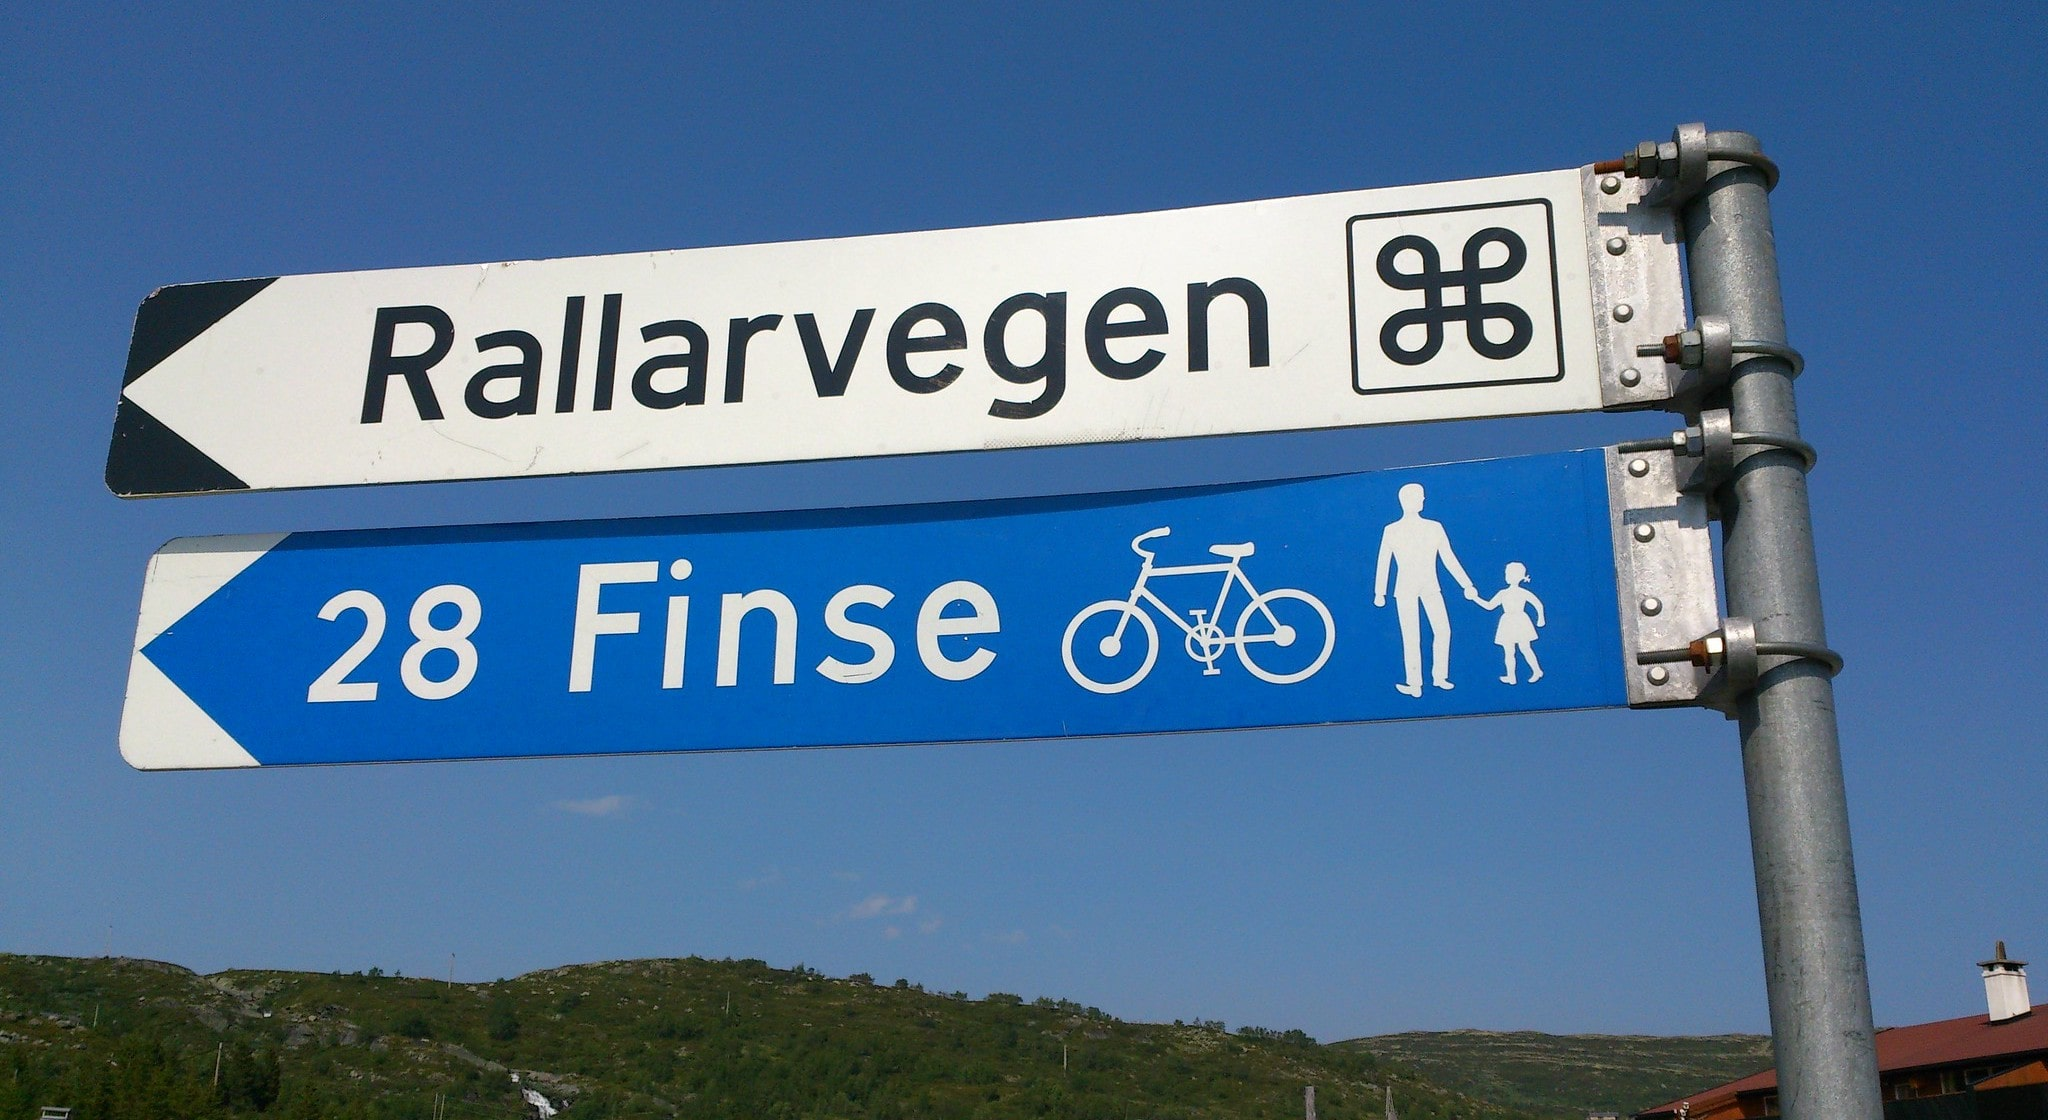 The routes are usually easy to do, but medium to difficult on the Setesdalheiene, the Sognefjell and the Rallarvegen